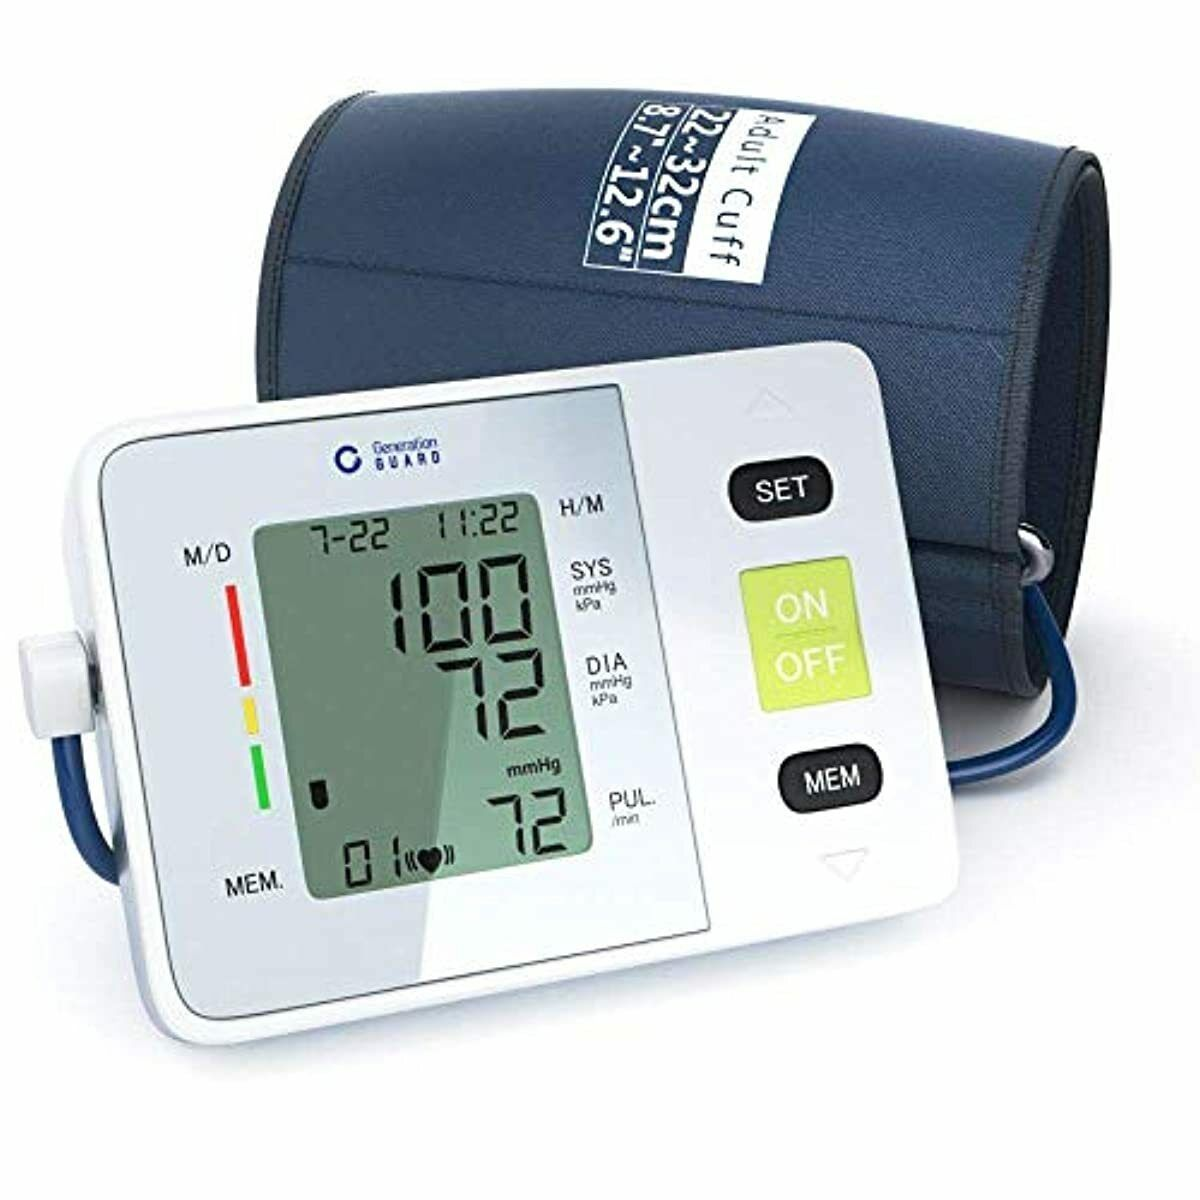 Clinical Automatic Upper Arm Blood Pressure Monitor - Accura